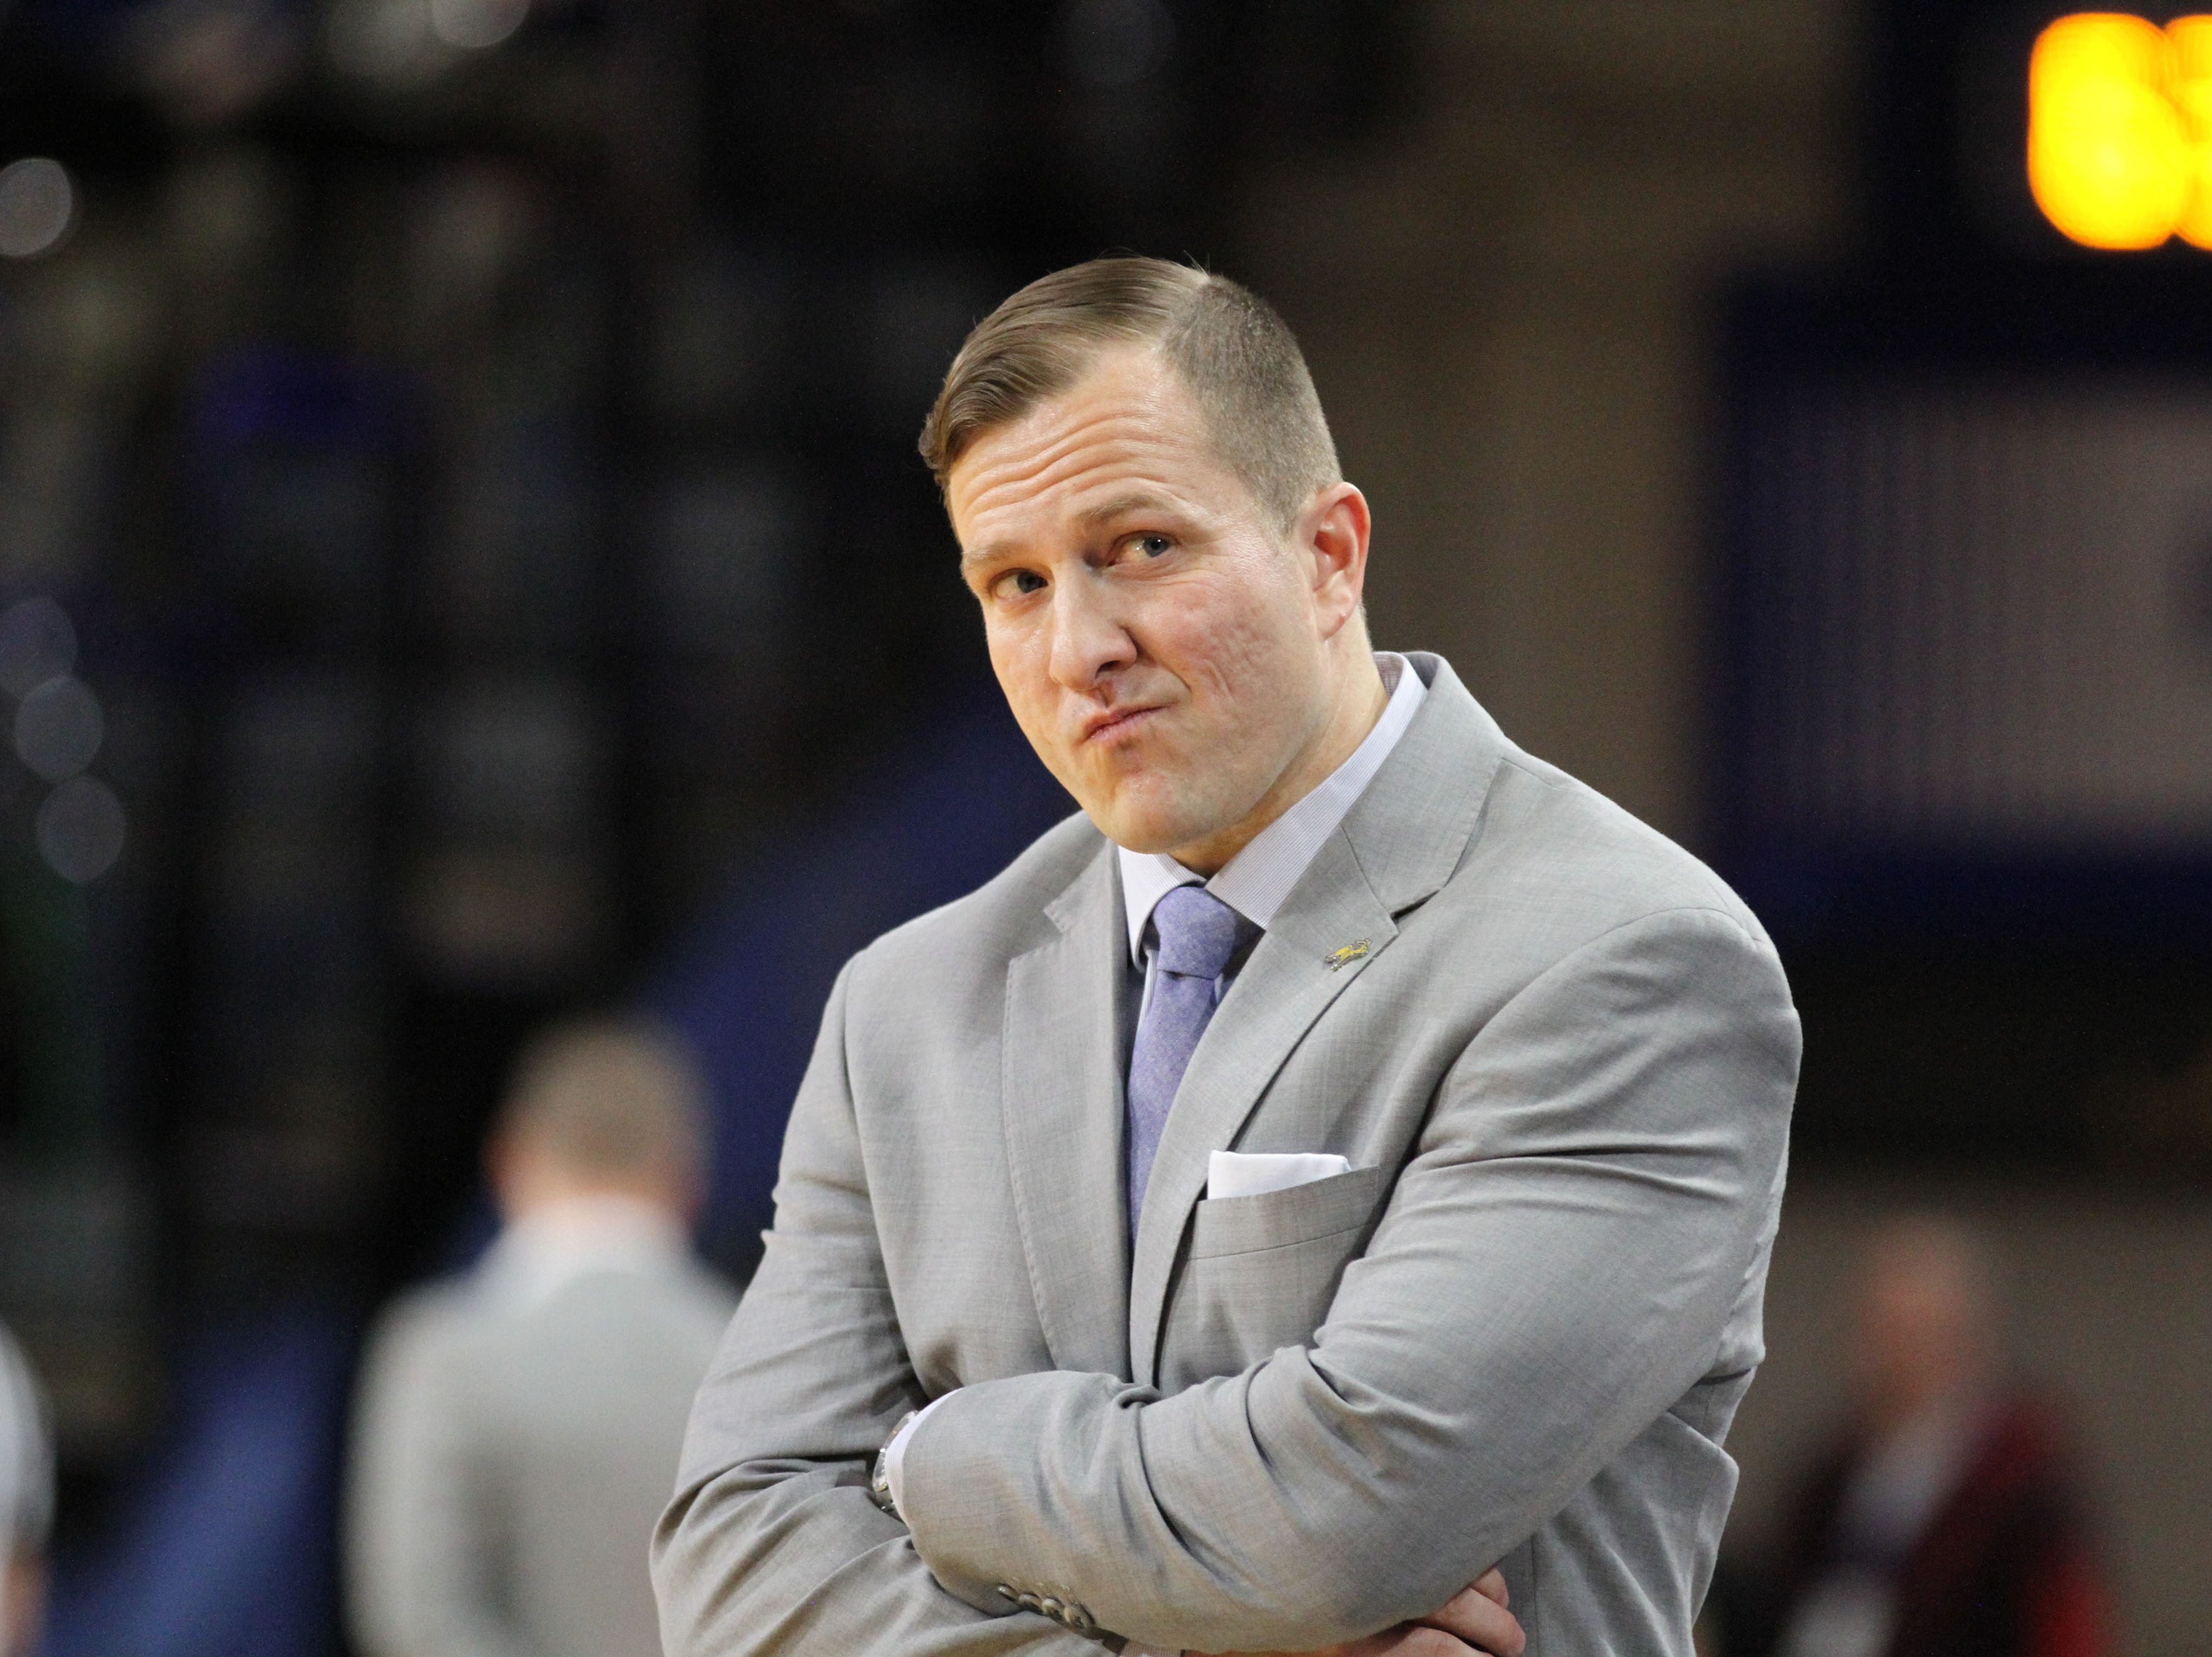 South Dakota State Head Coach T.J. Otzelberger reacts to a called foul during the second half of the Jackrabbits' matchup with Oral Roberts Saturday afternoon at Frost Arena in Brookings.